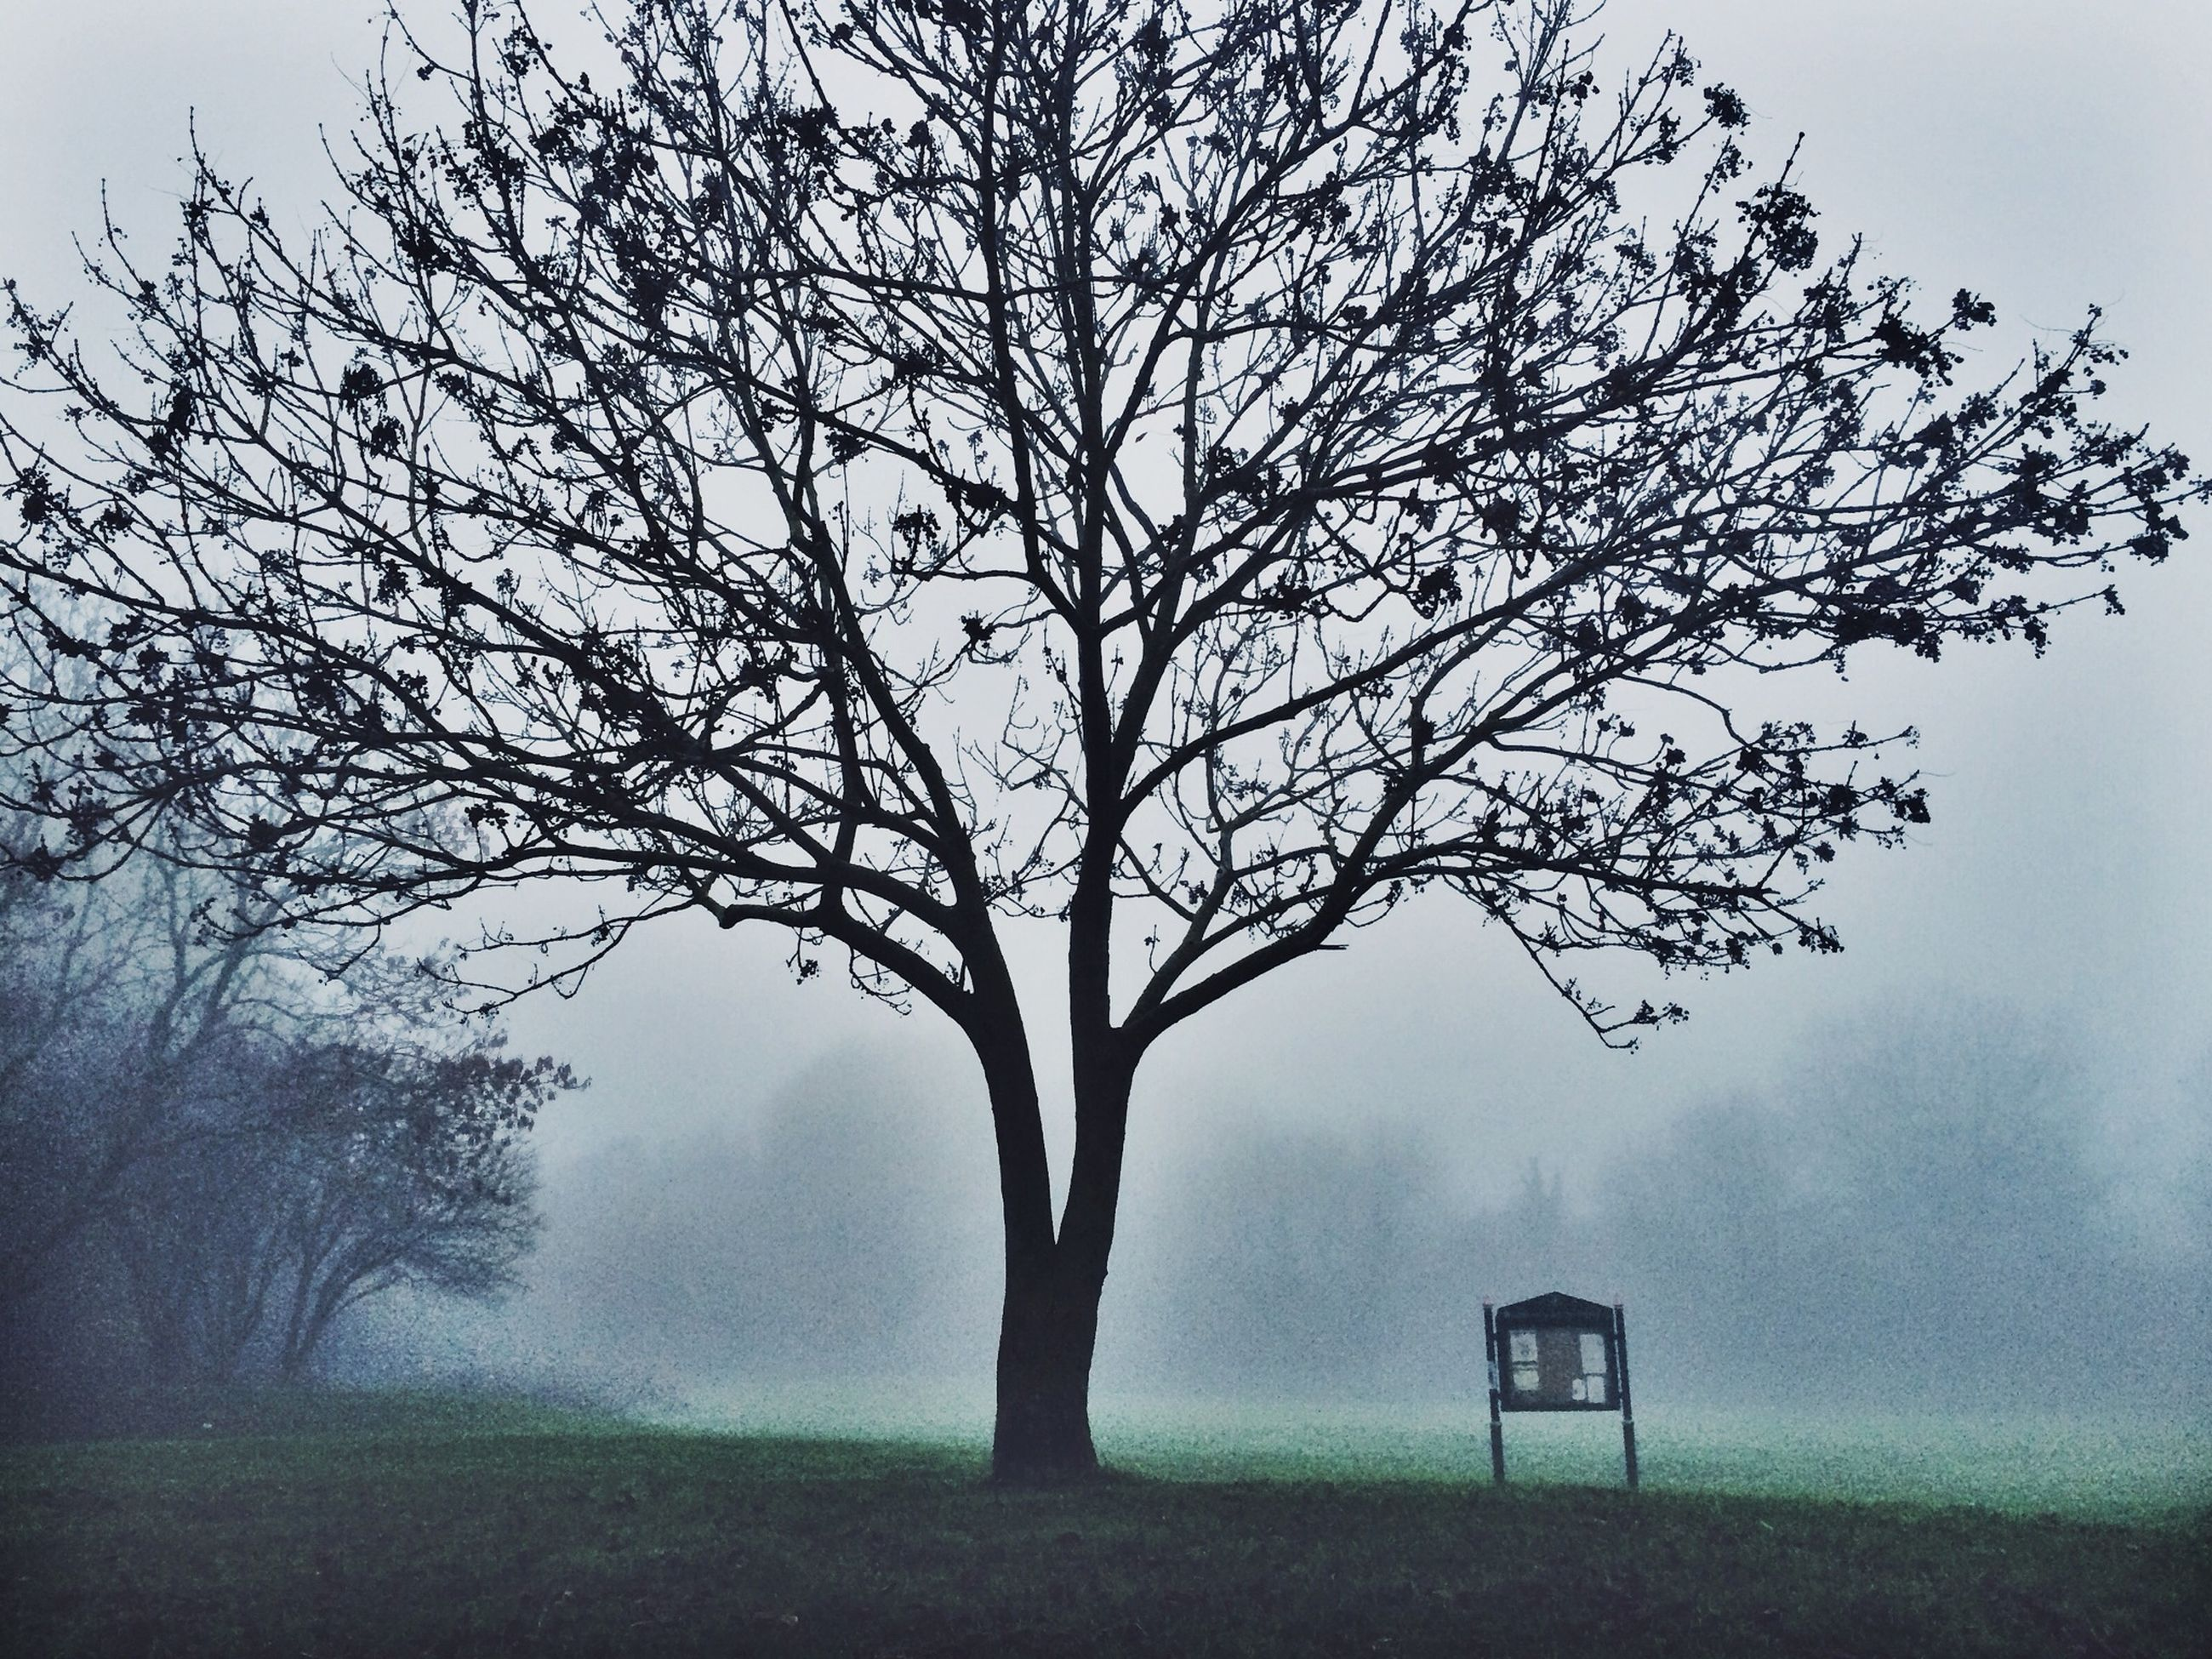 tree, bare tree, branch, tranquility, field, tranquil scene, nature, landscape, sky, fog, grass, beauty in nature, scenics, growth, foggy, tree trunk, day, fence, outdoors